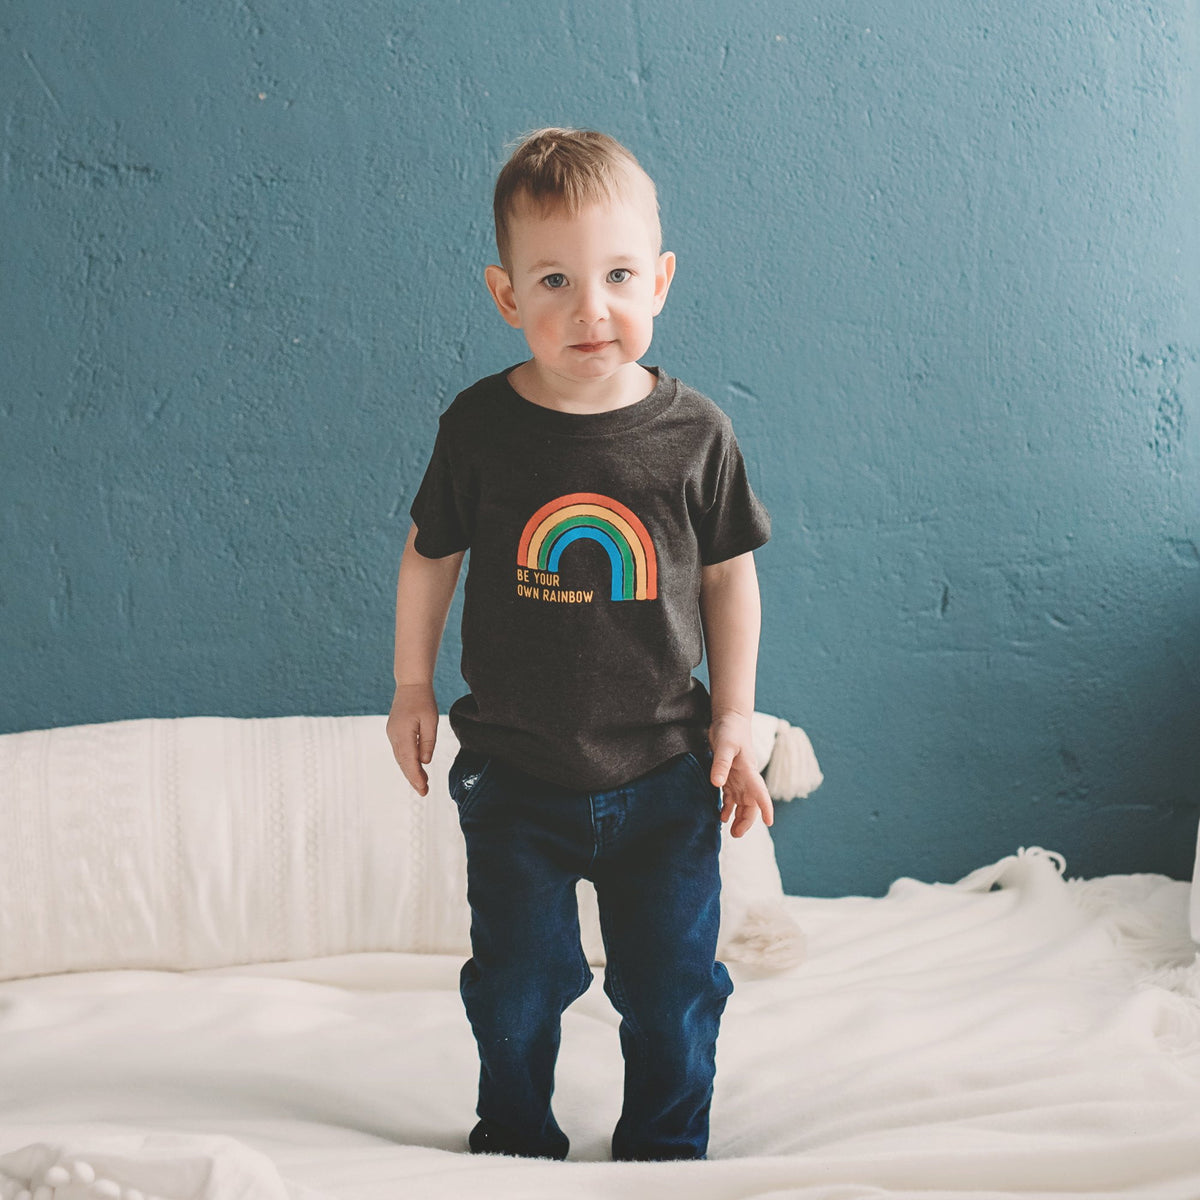 Be Your Own Rainbow Kid's T-shirt - Sweetpea and Co.